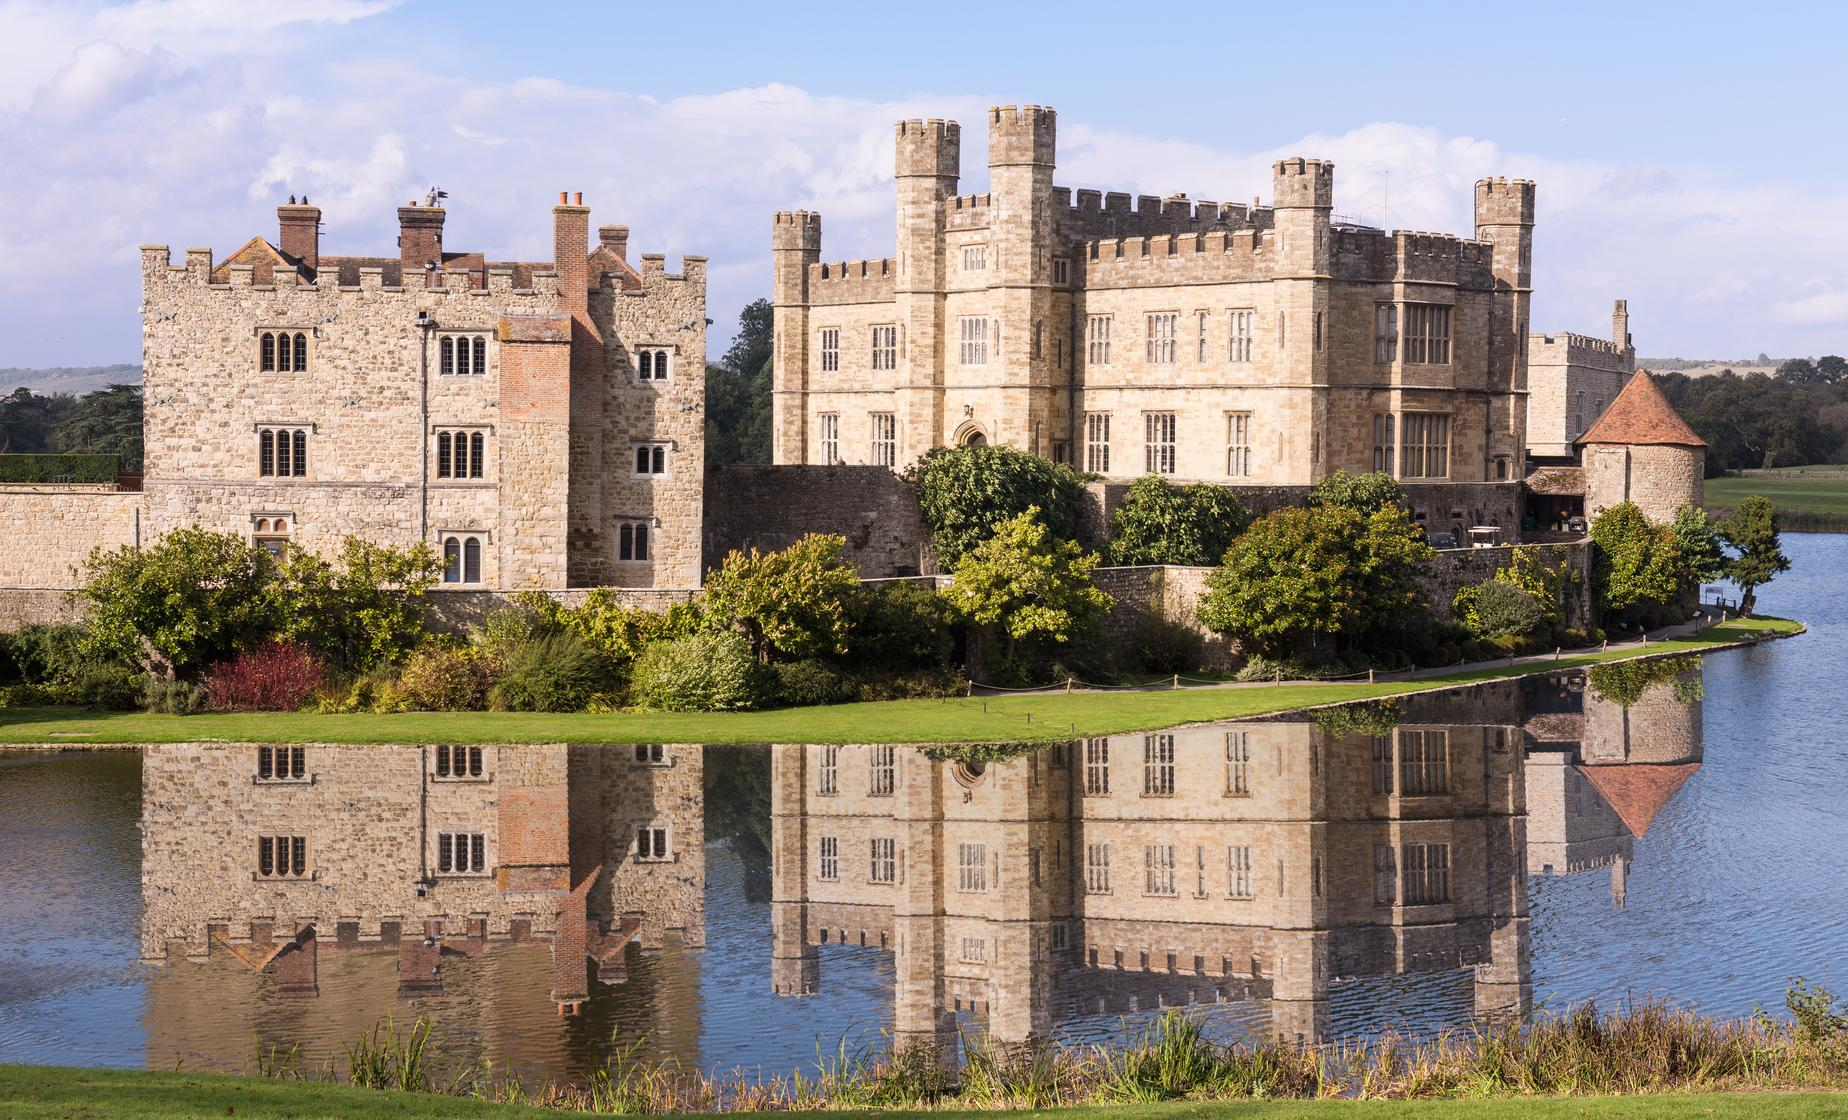 Dover Full Day Tour to London & Heathrow Hotel (Canterbury, Leeds Castle, Garden of England)